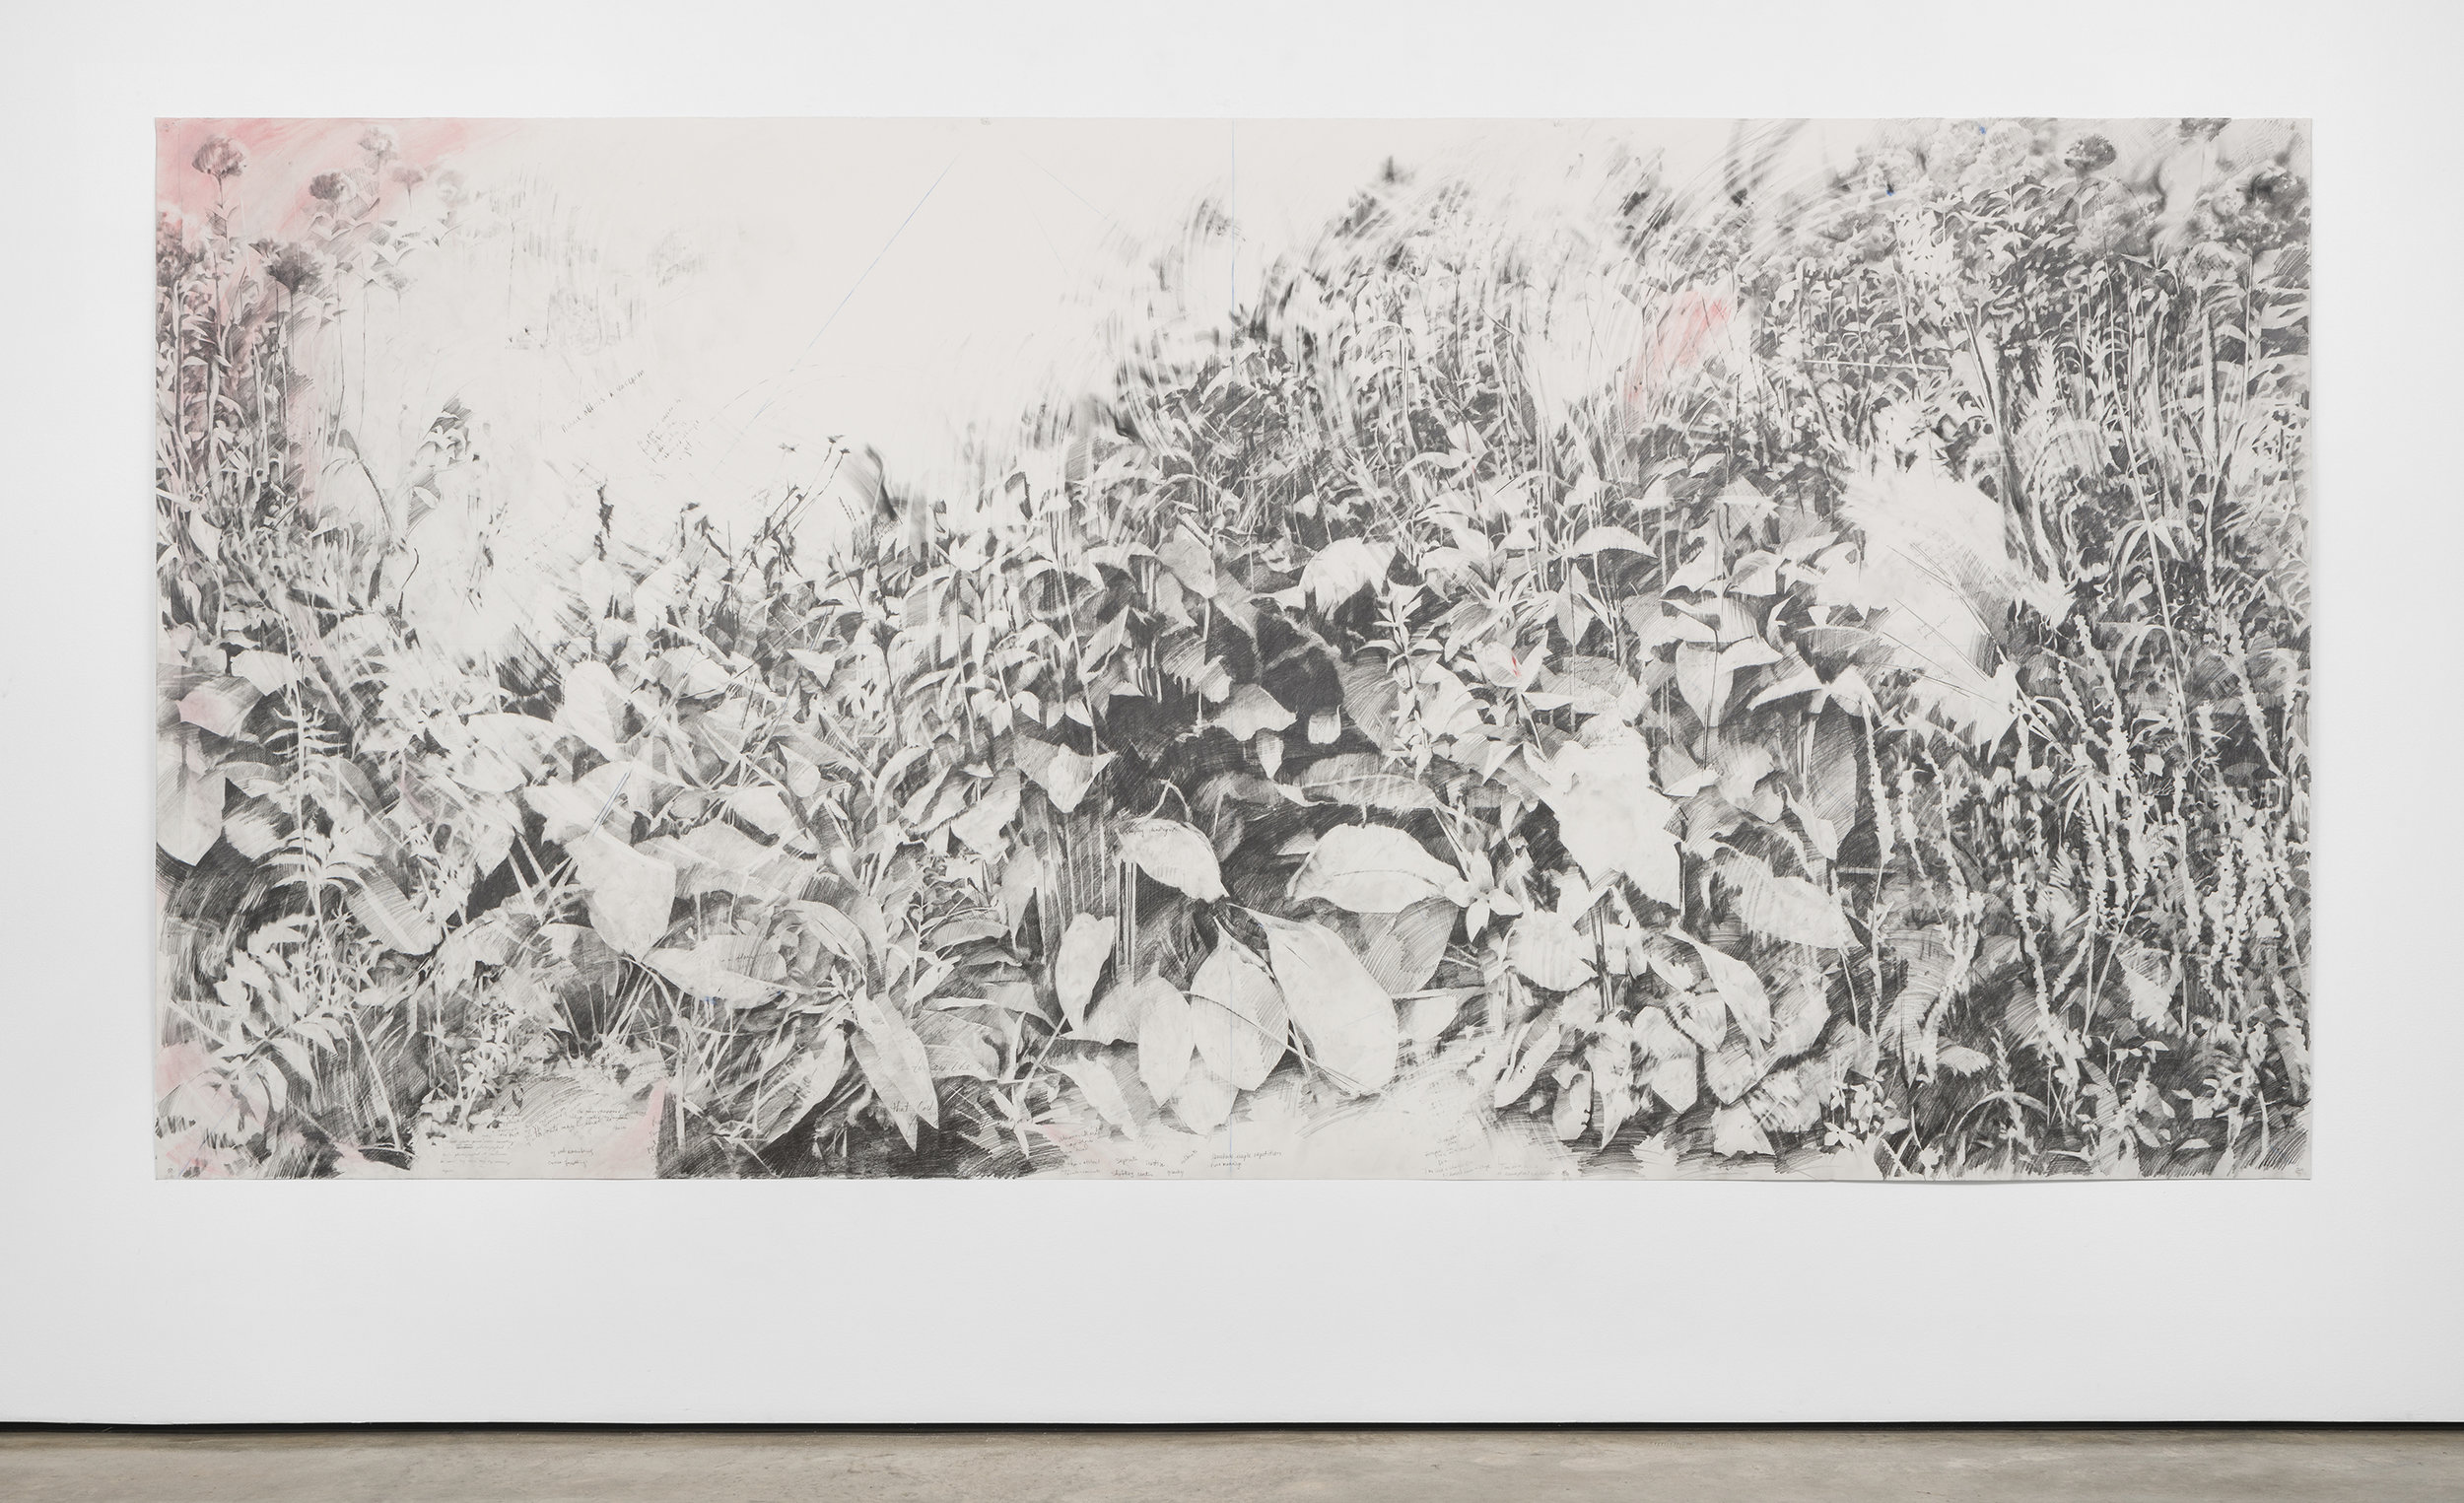 Void #1,  2019, graphite and pigment on paper, 6 x 12 feet - Image by Colin Doyle